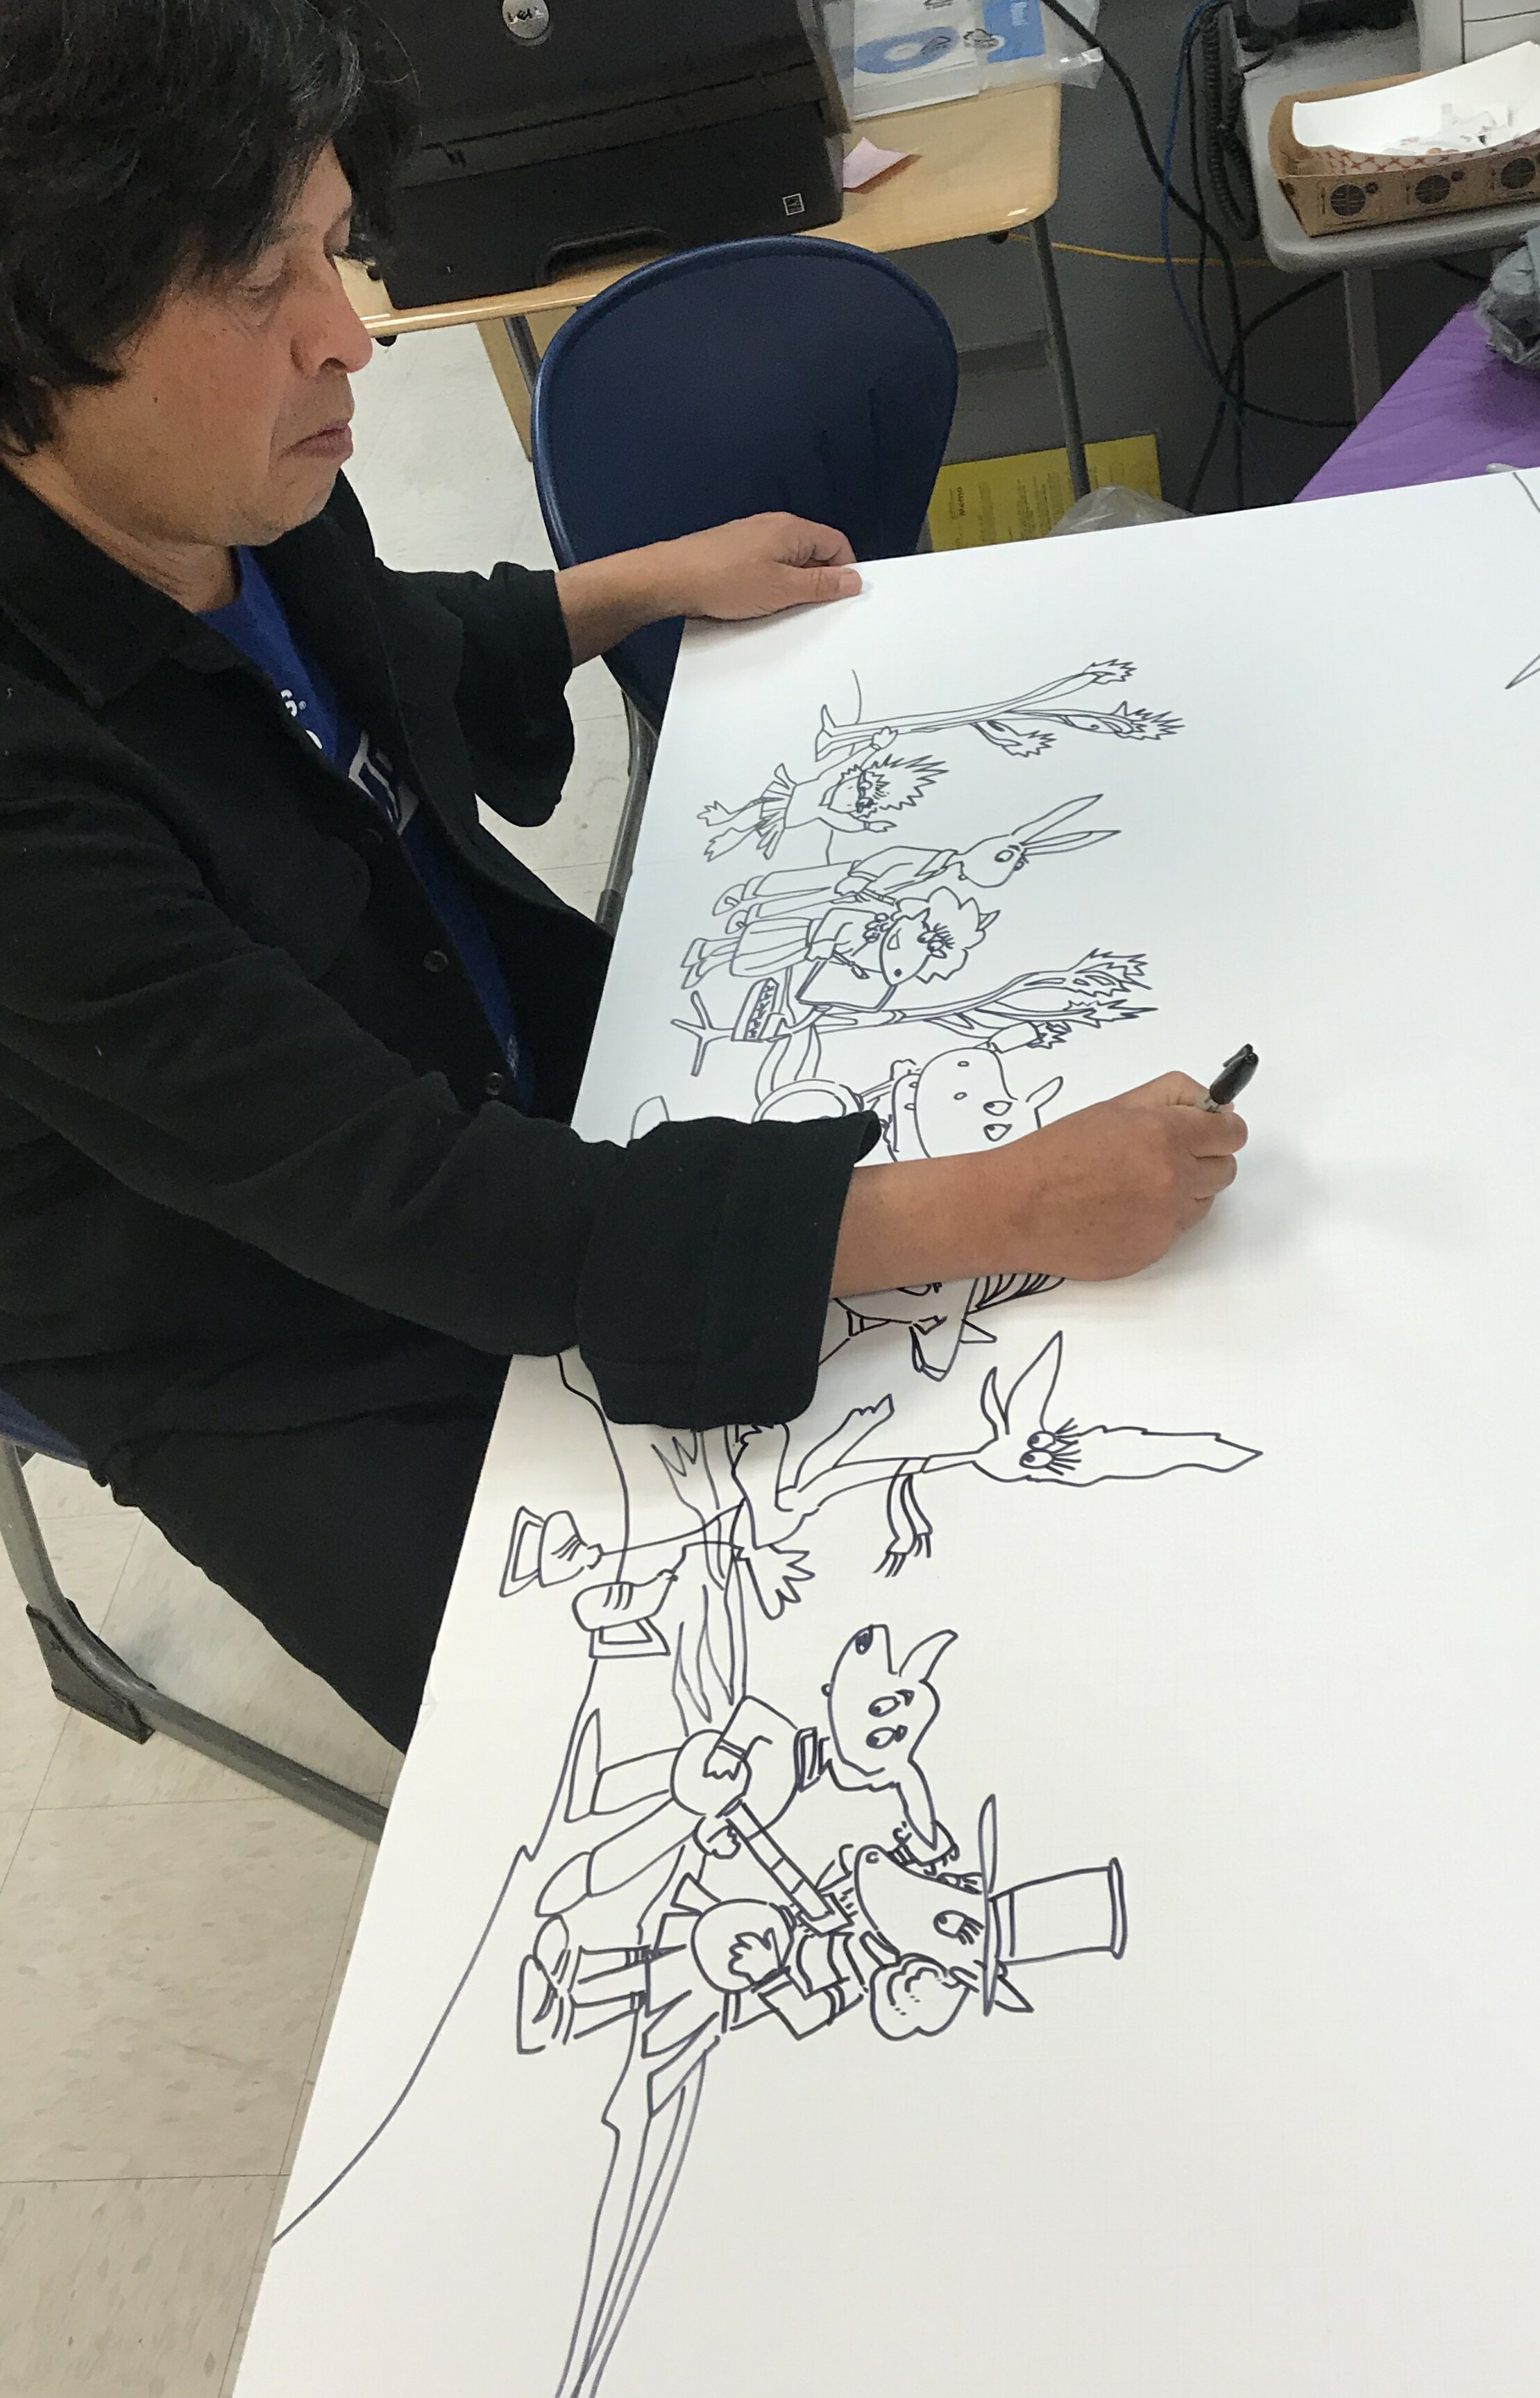 f6e98b76b Paint, brushes, and comic books were all unpacked and Phil soon began to  freehand the mural for us to paint. Right before our eyes he created  mountains, ...